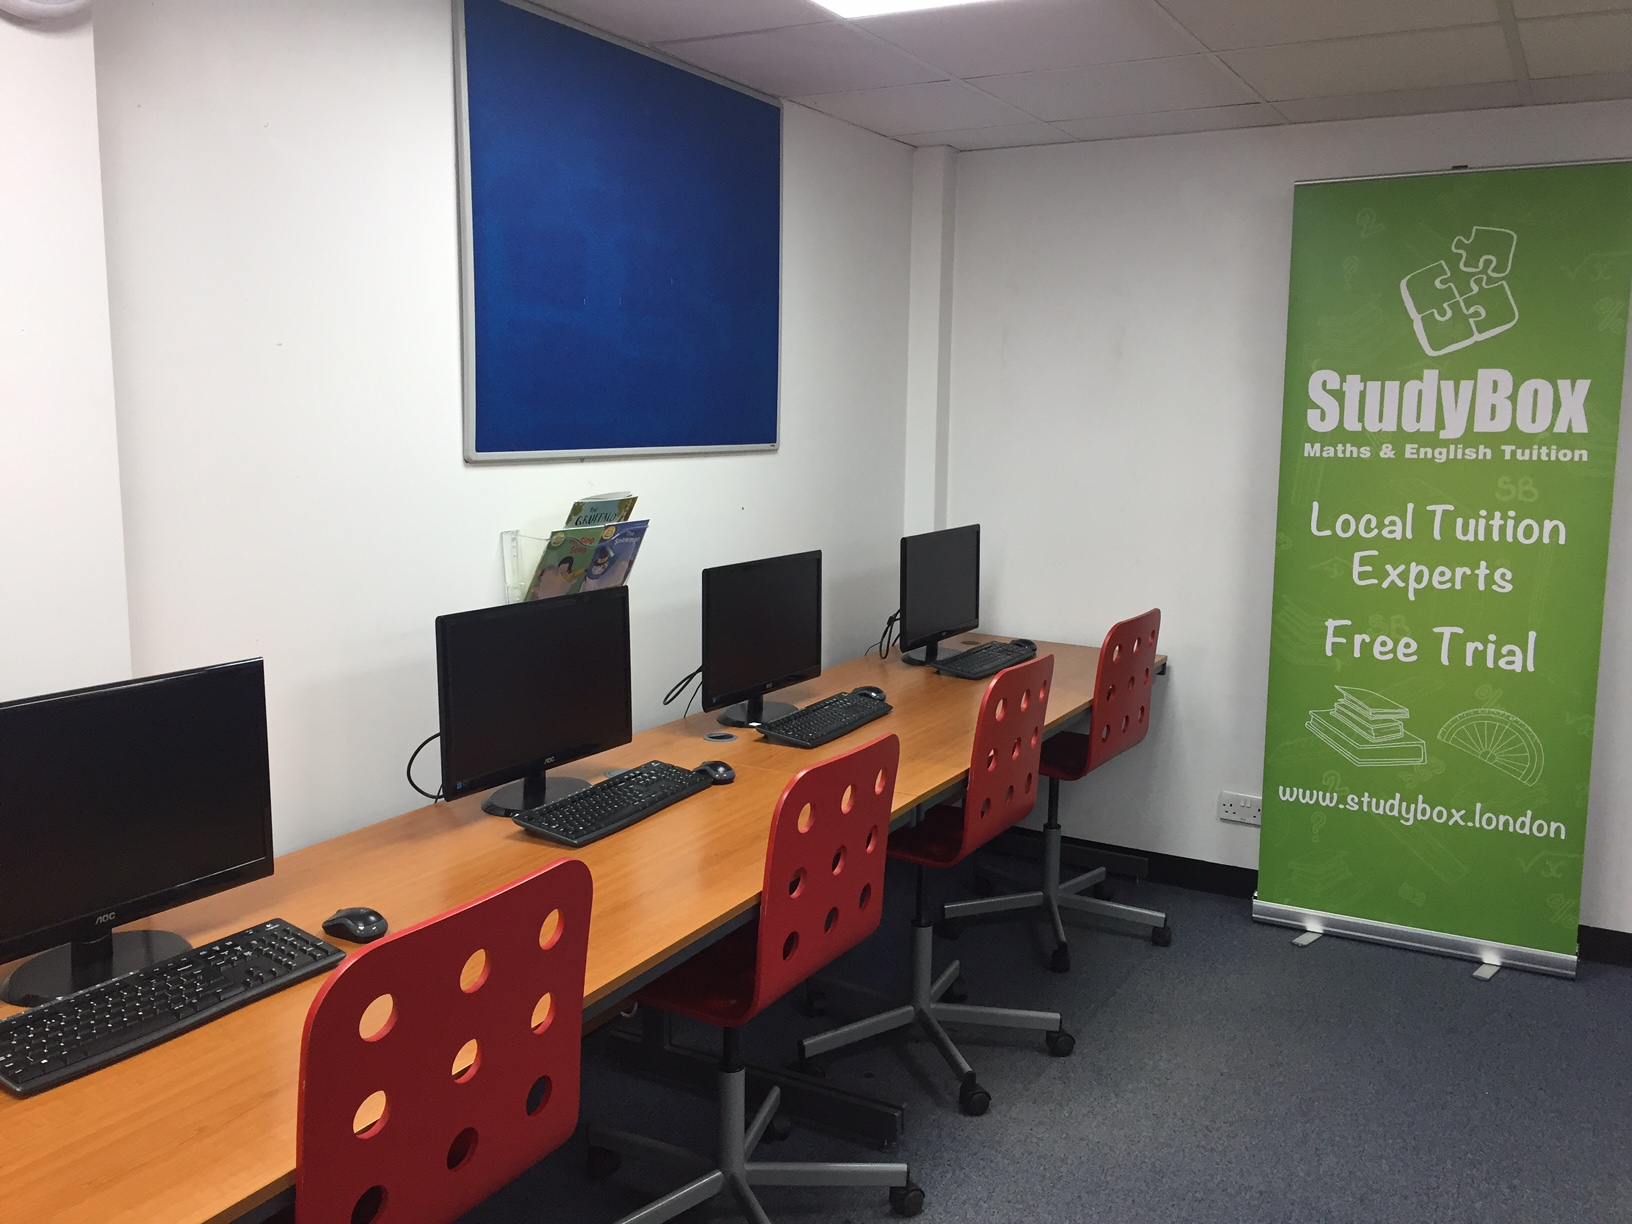 StudyBox Tuition Sutton